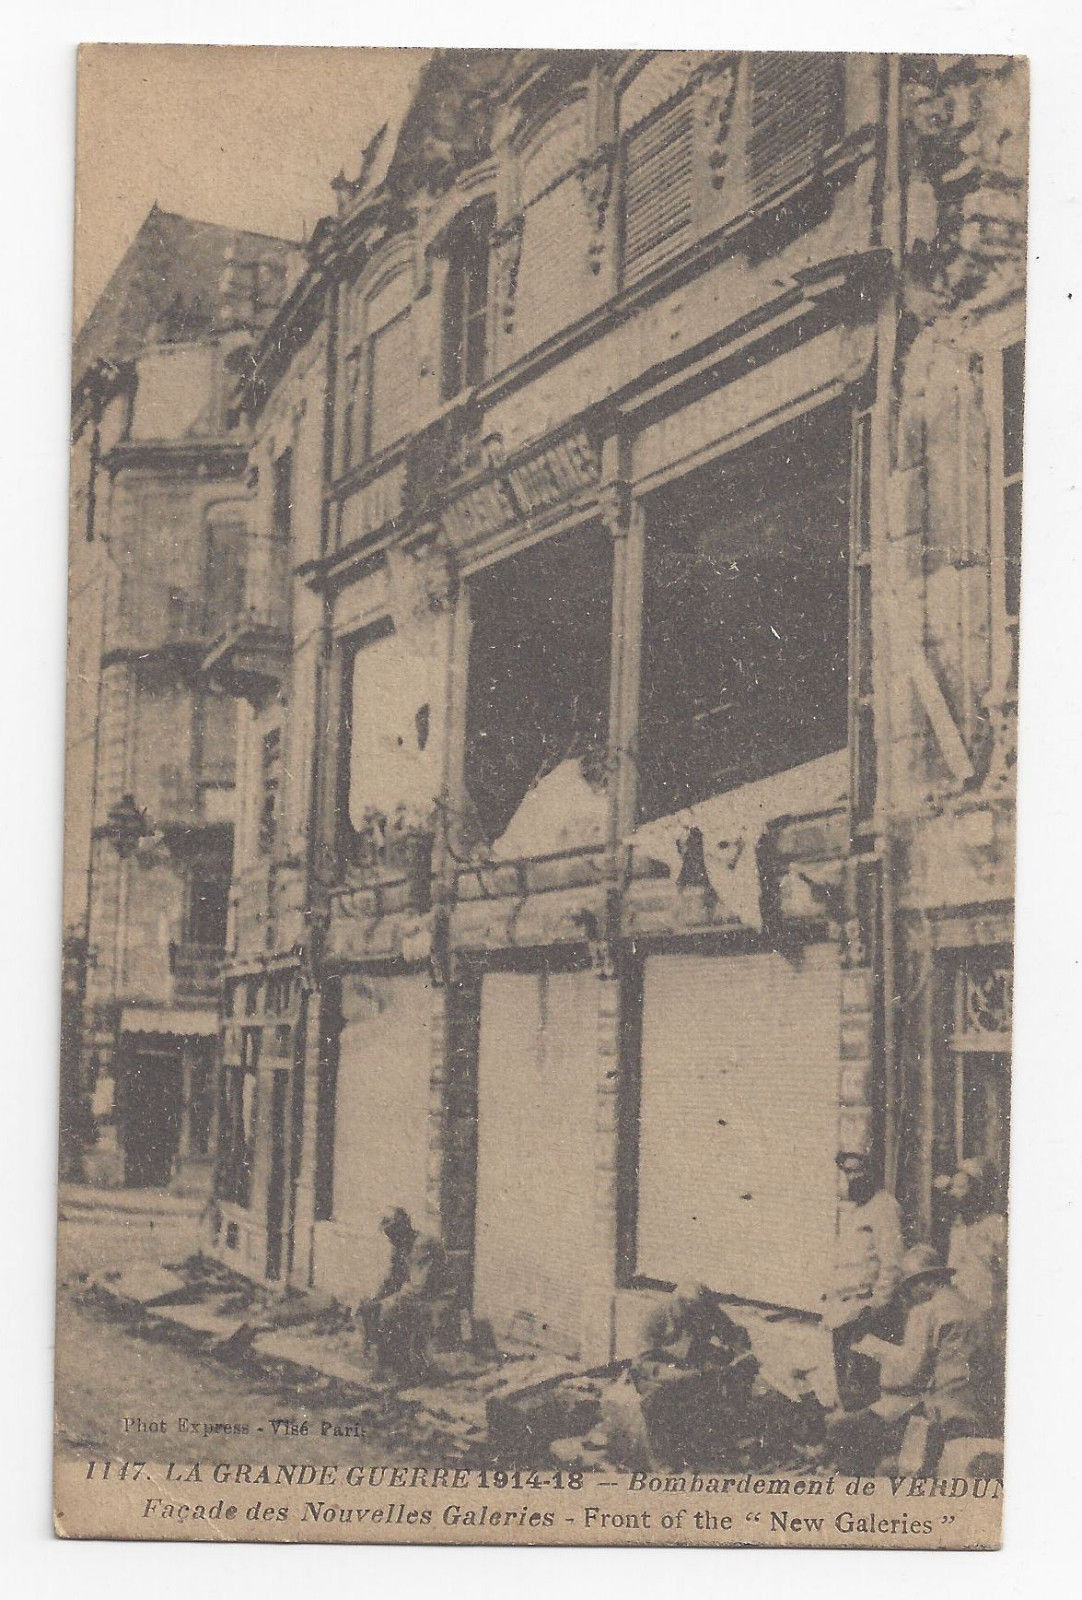 WWI France Verdun after Bombardment Facade New Galeries c 1918 Postcard